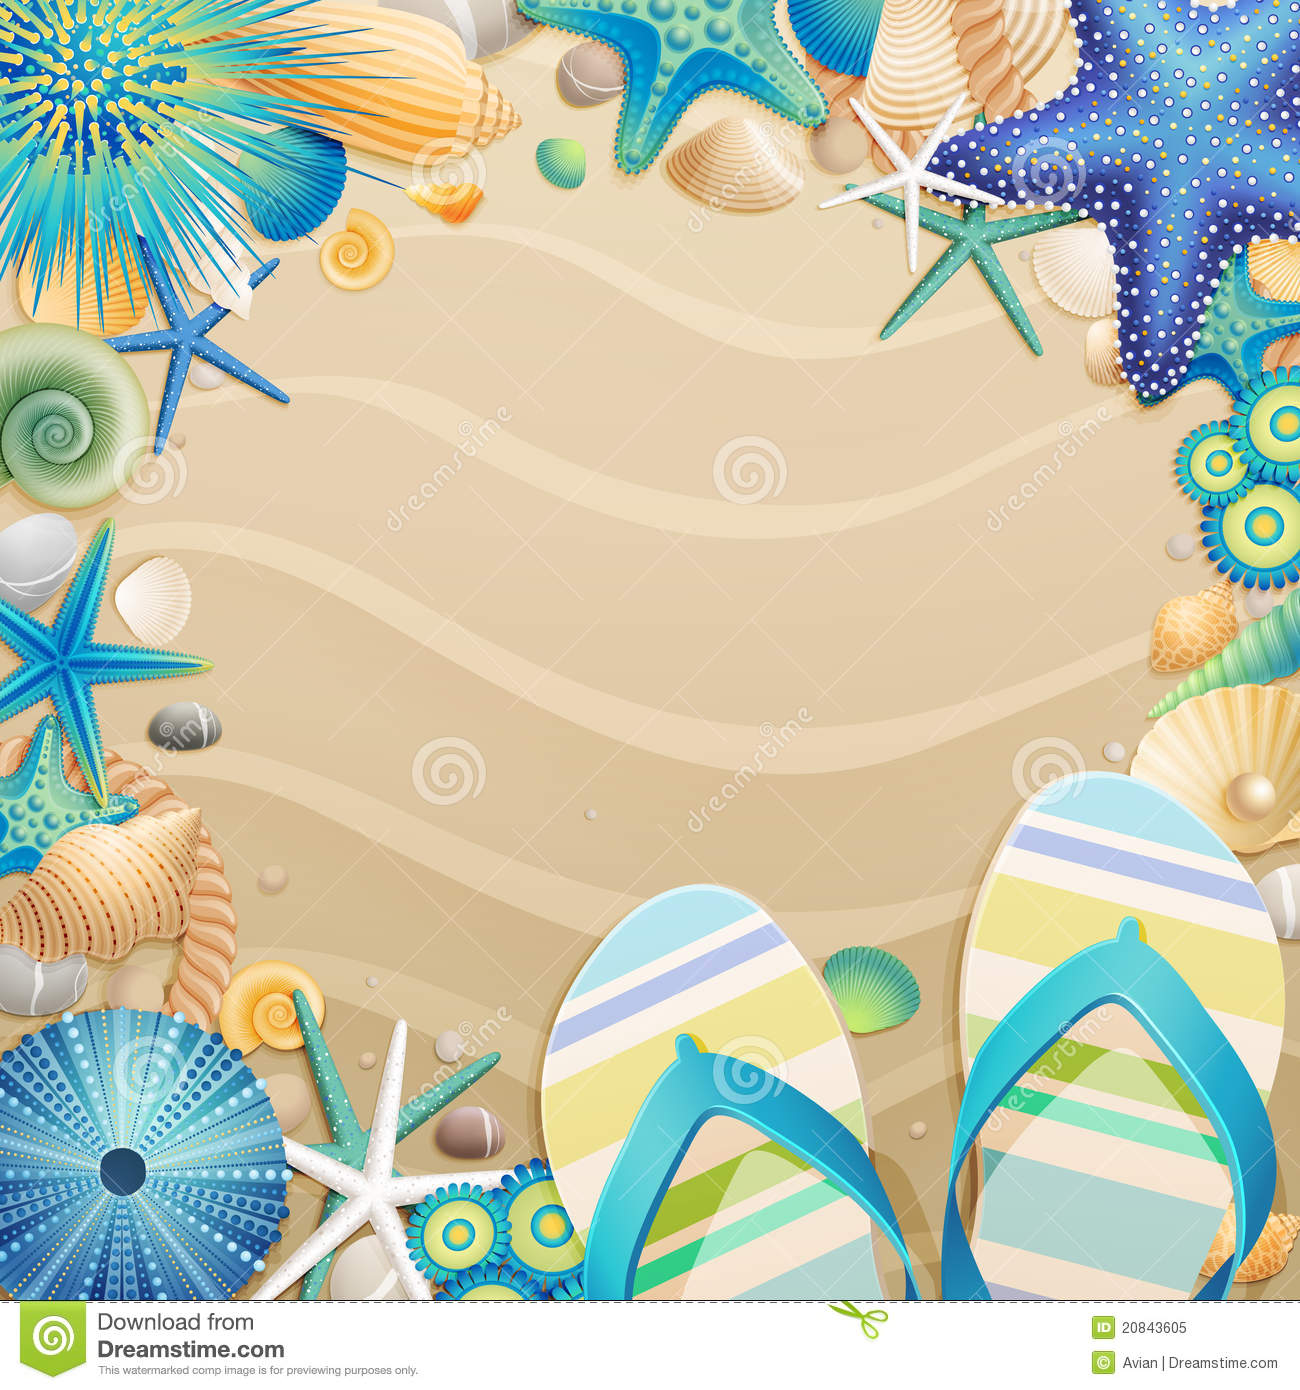 Beach Frame Clipart - Clipart Kid